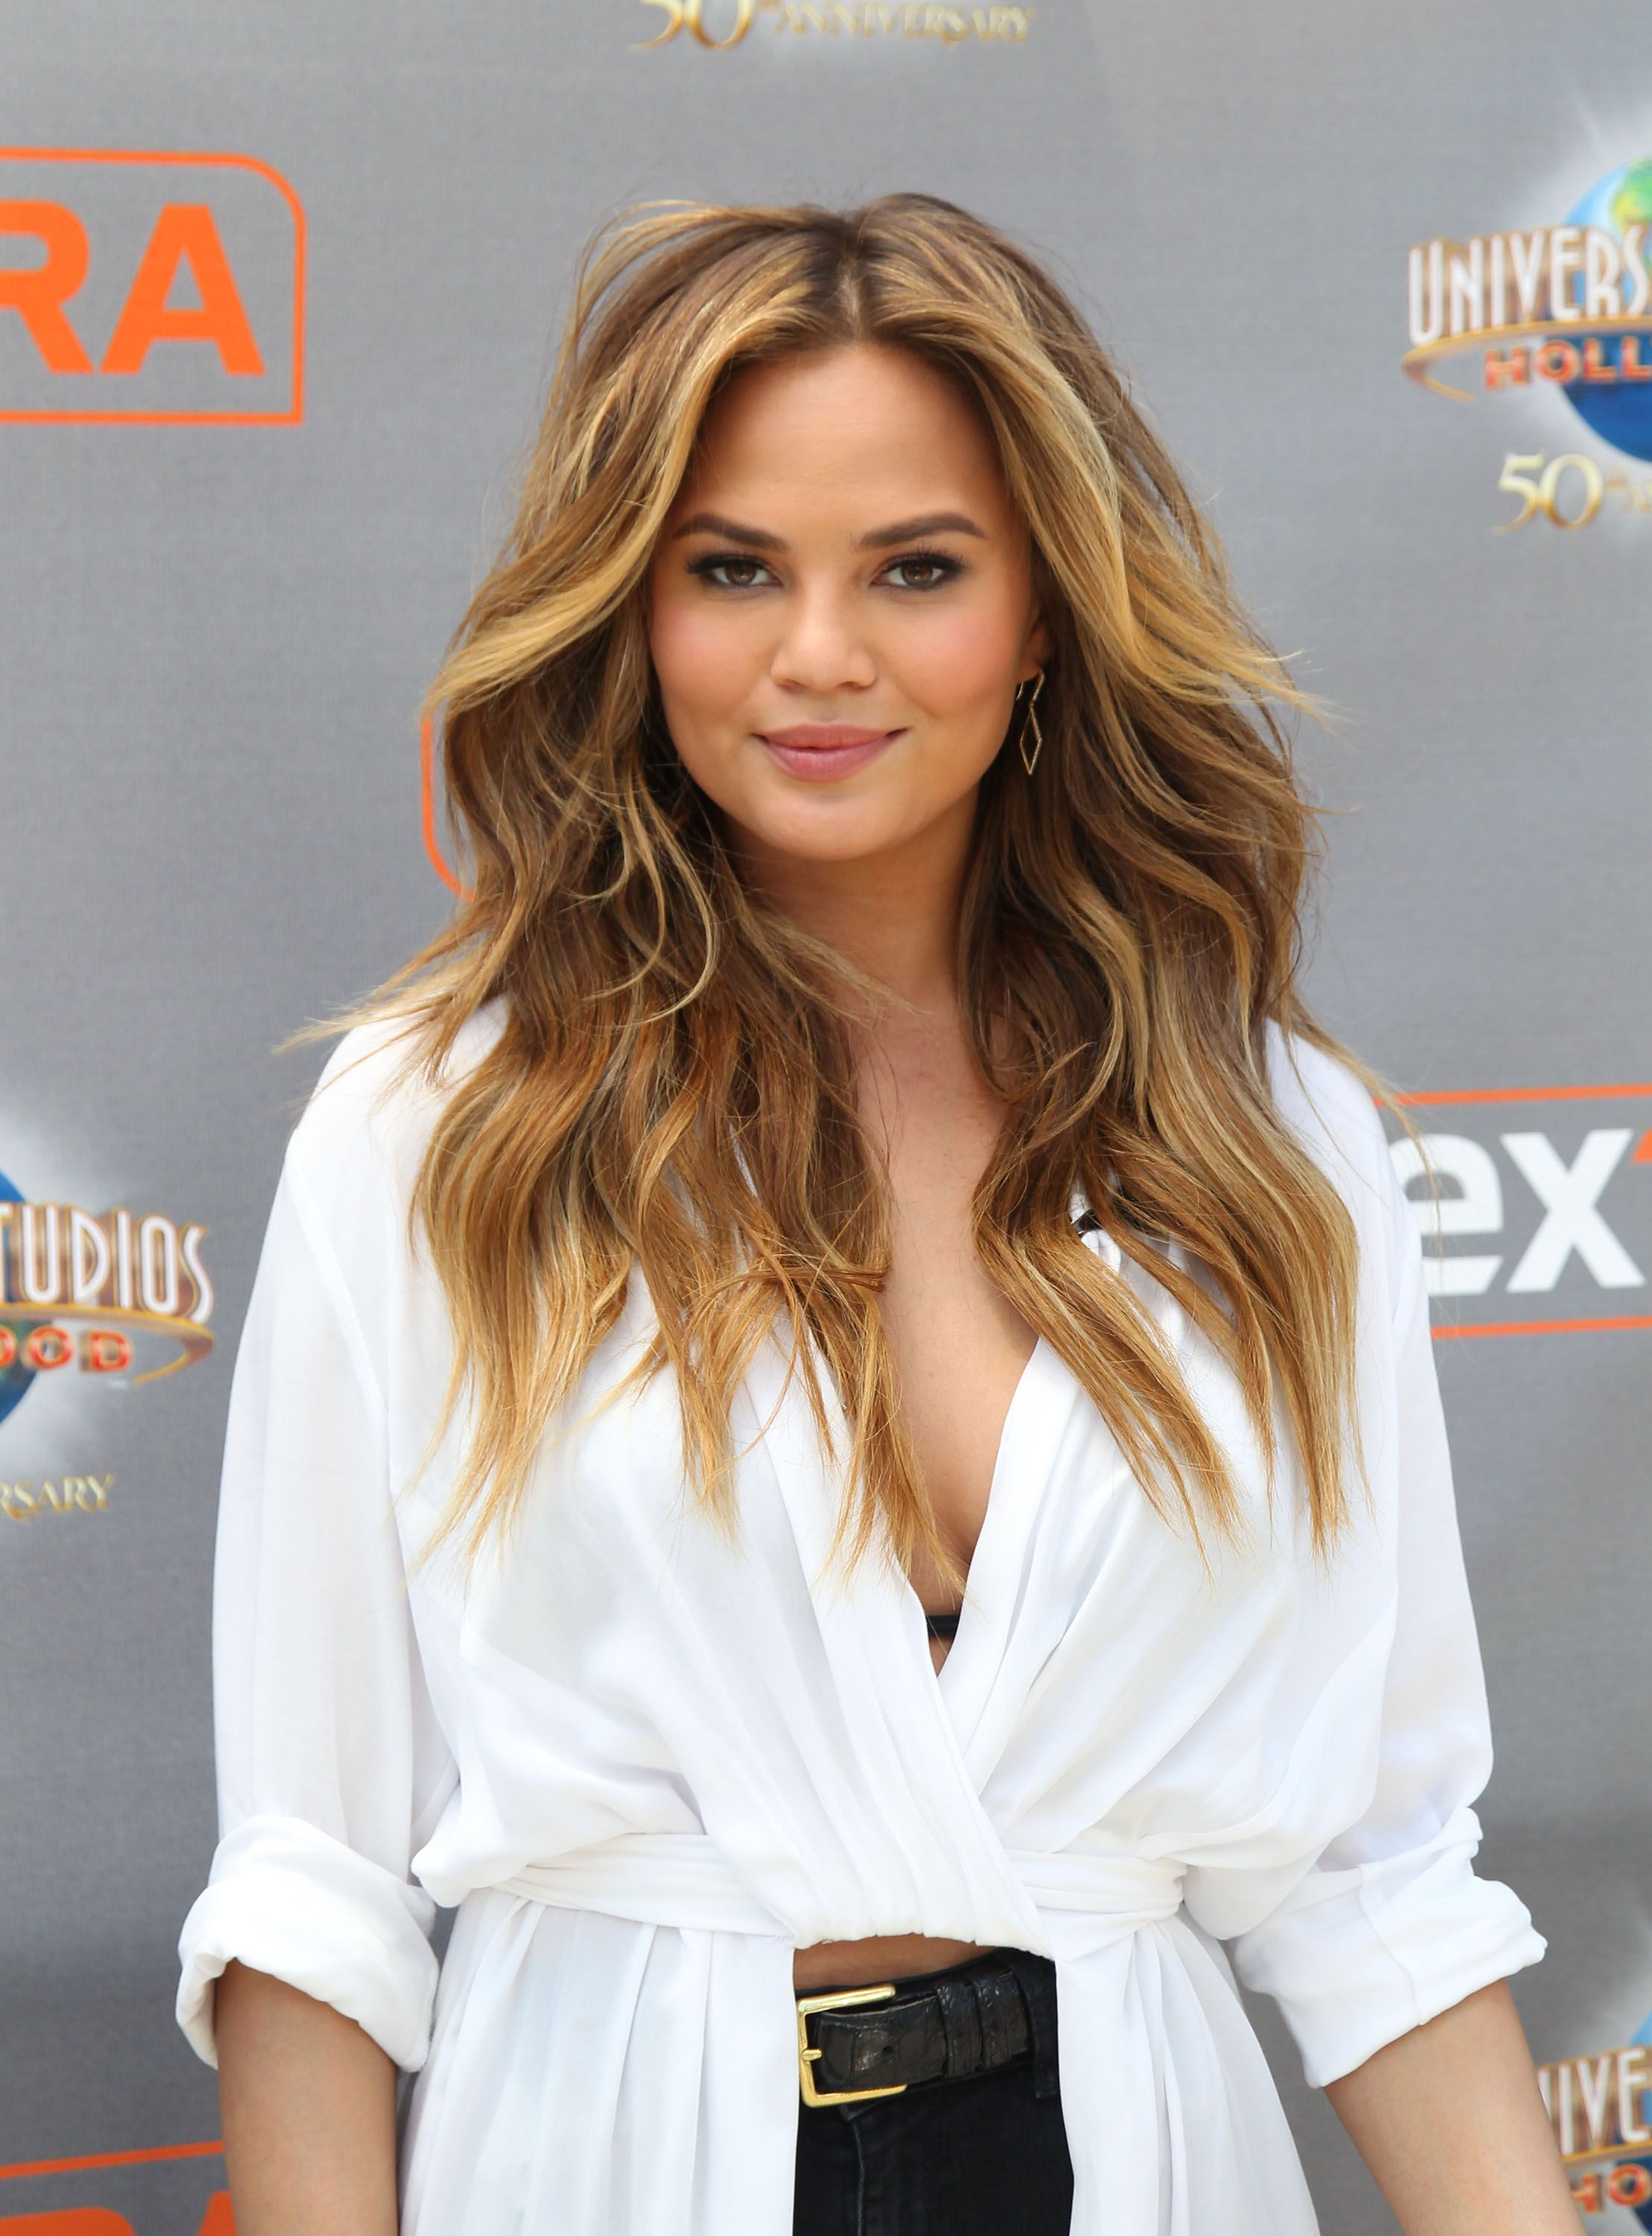 """Model Chrissy Teigen visits """"Extra"""" at Universal Studios Hollywood in May 2015. 